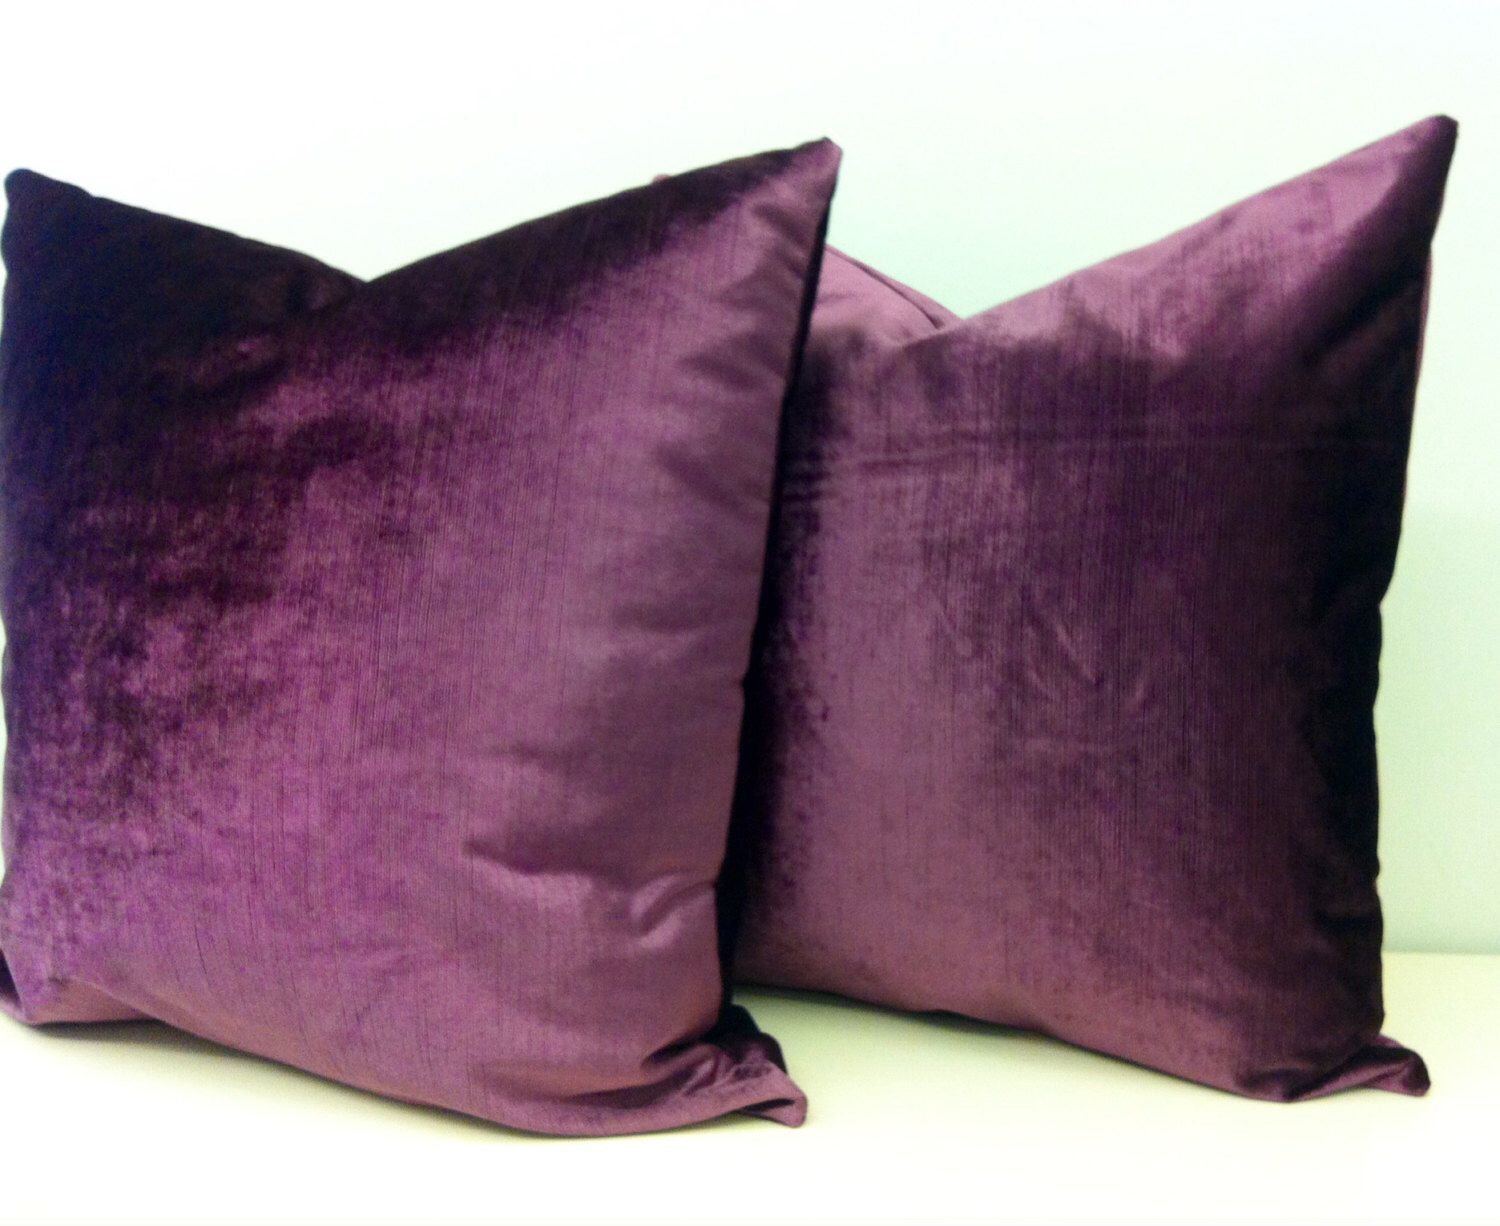 two plum velvet pillow covers velvet pillow decorative pillows  - two plum velvet pillow covers velvet pillow decorative pillows purplevelvet pillow covers